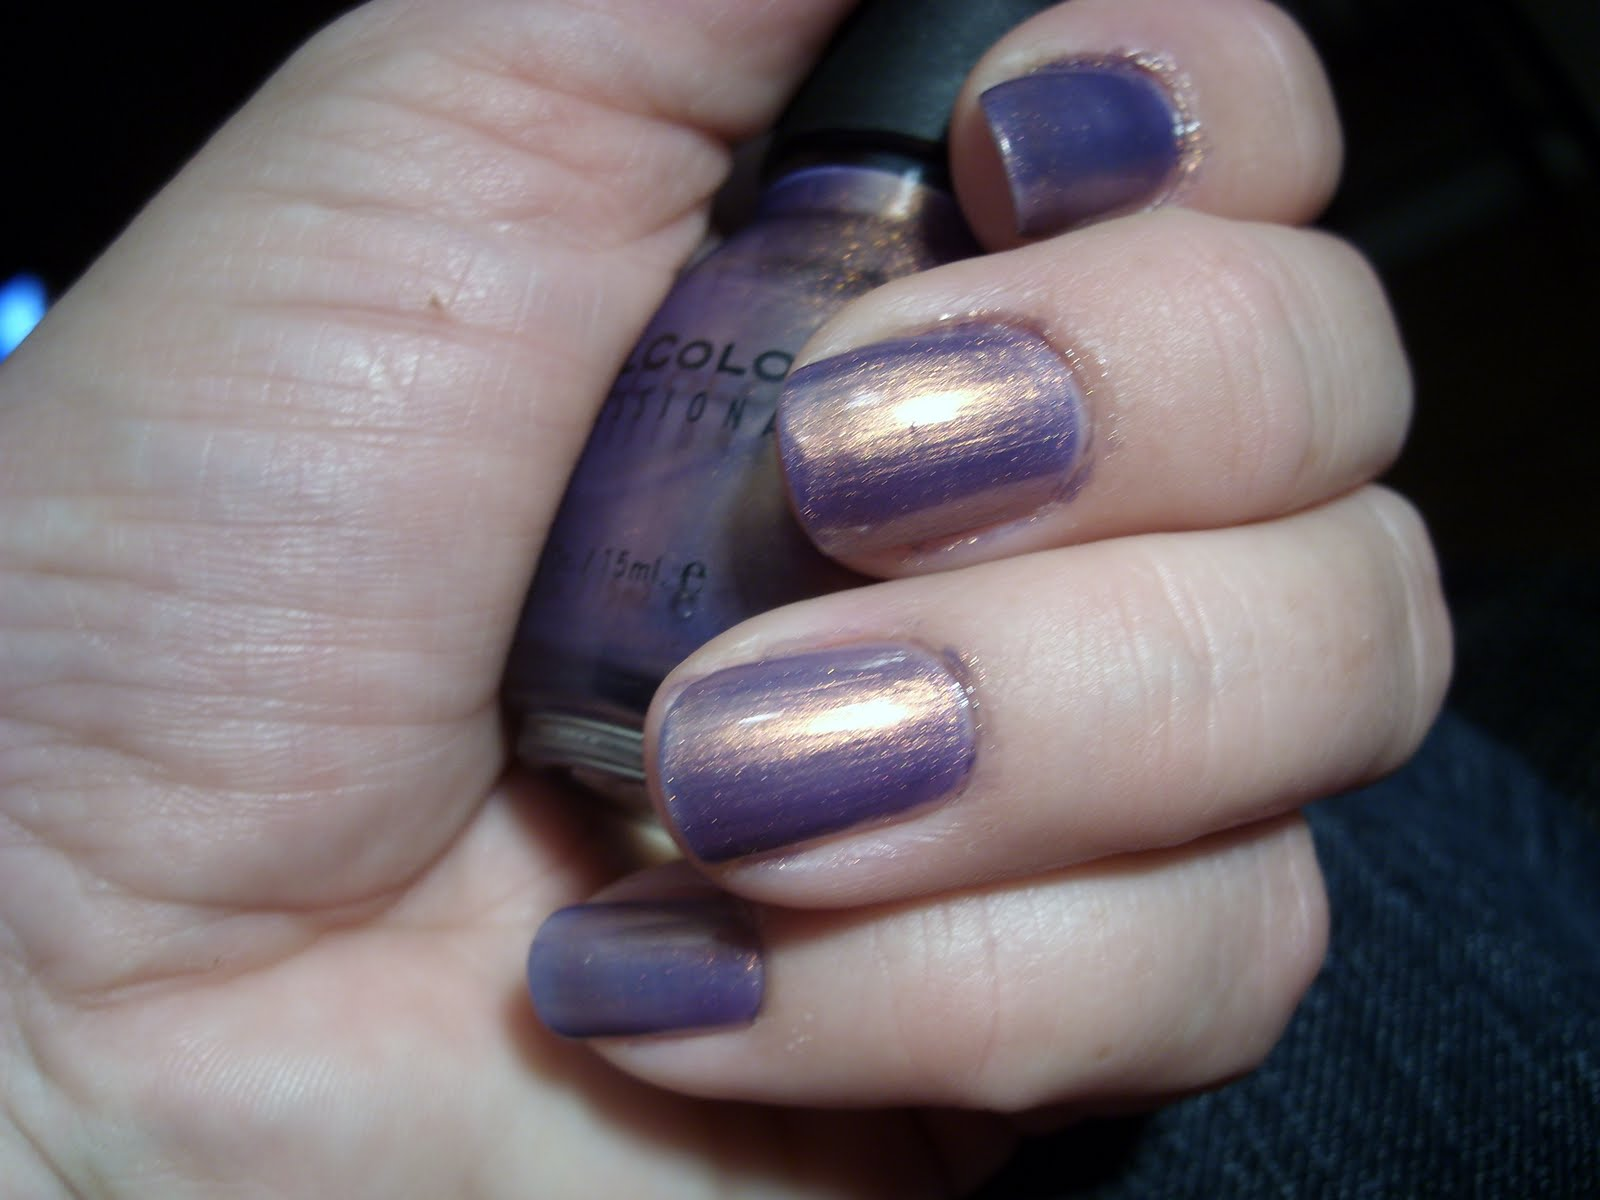 Almost never without nail polish: augusti 2010